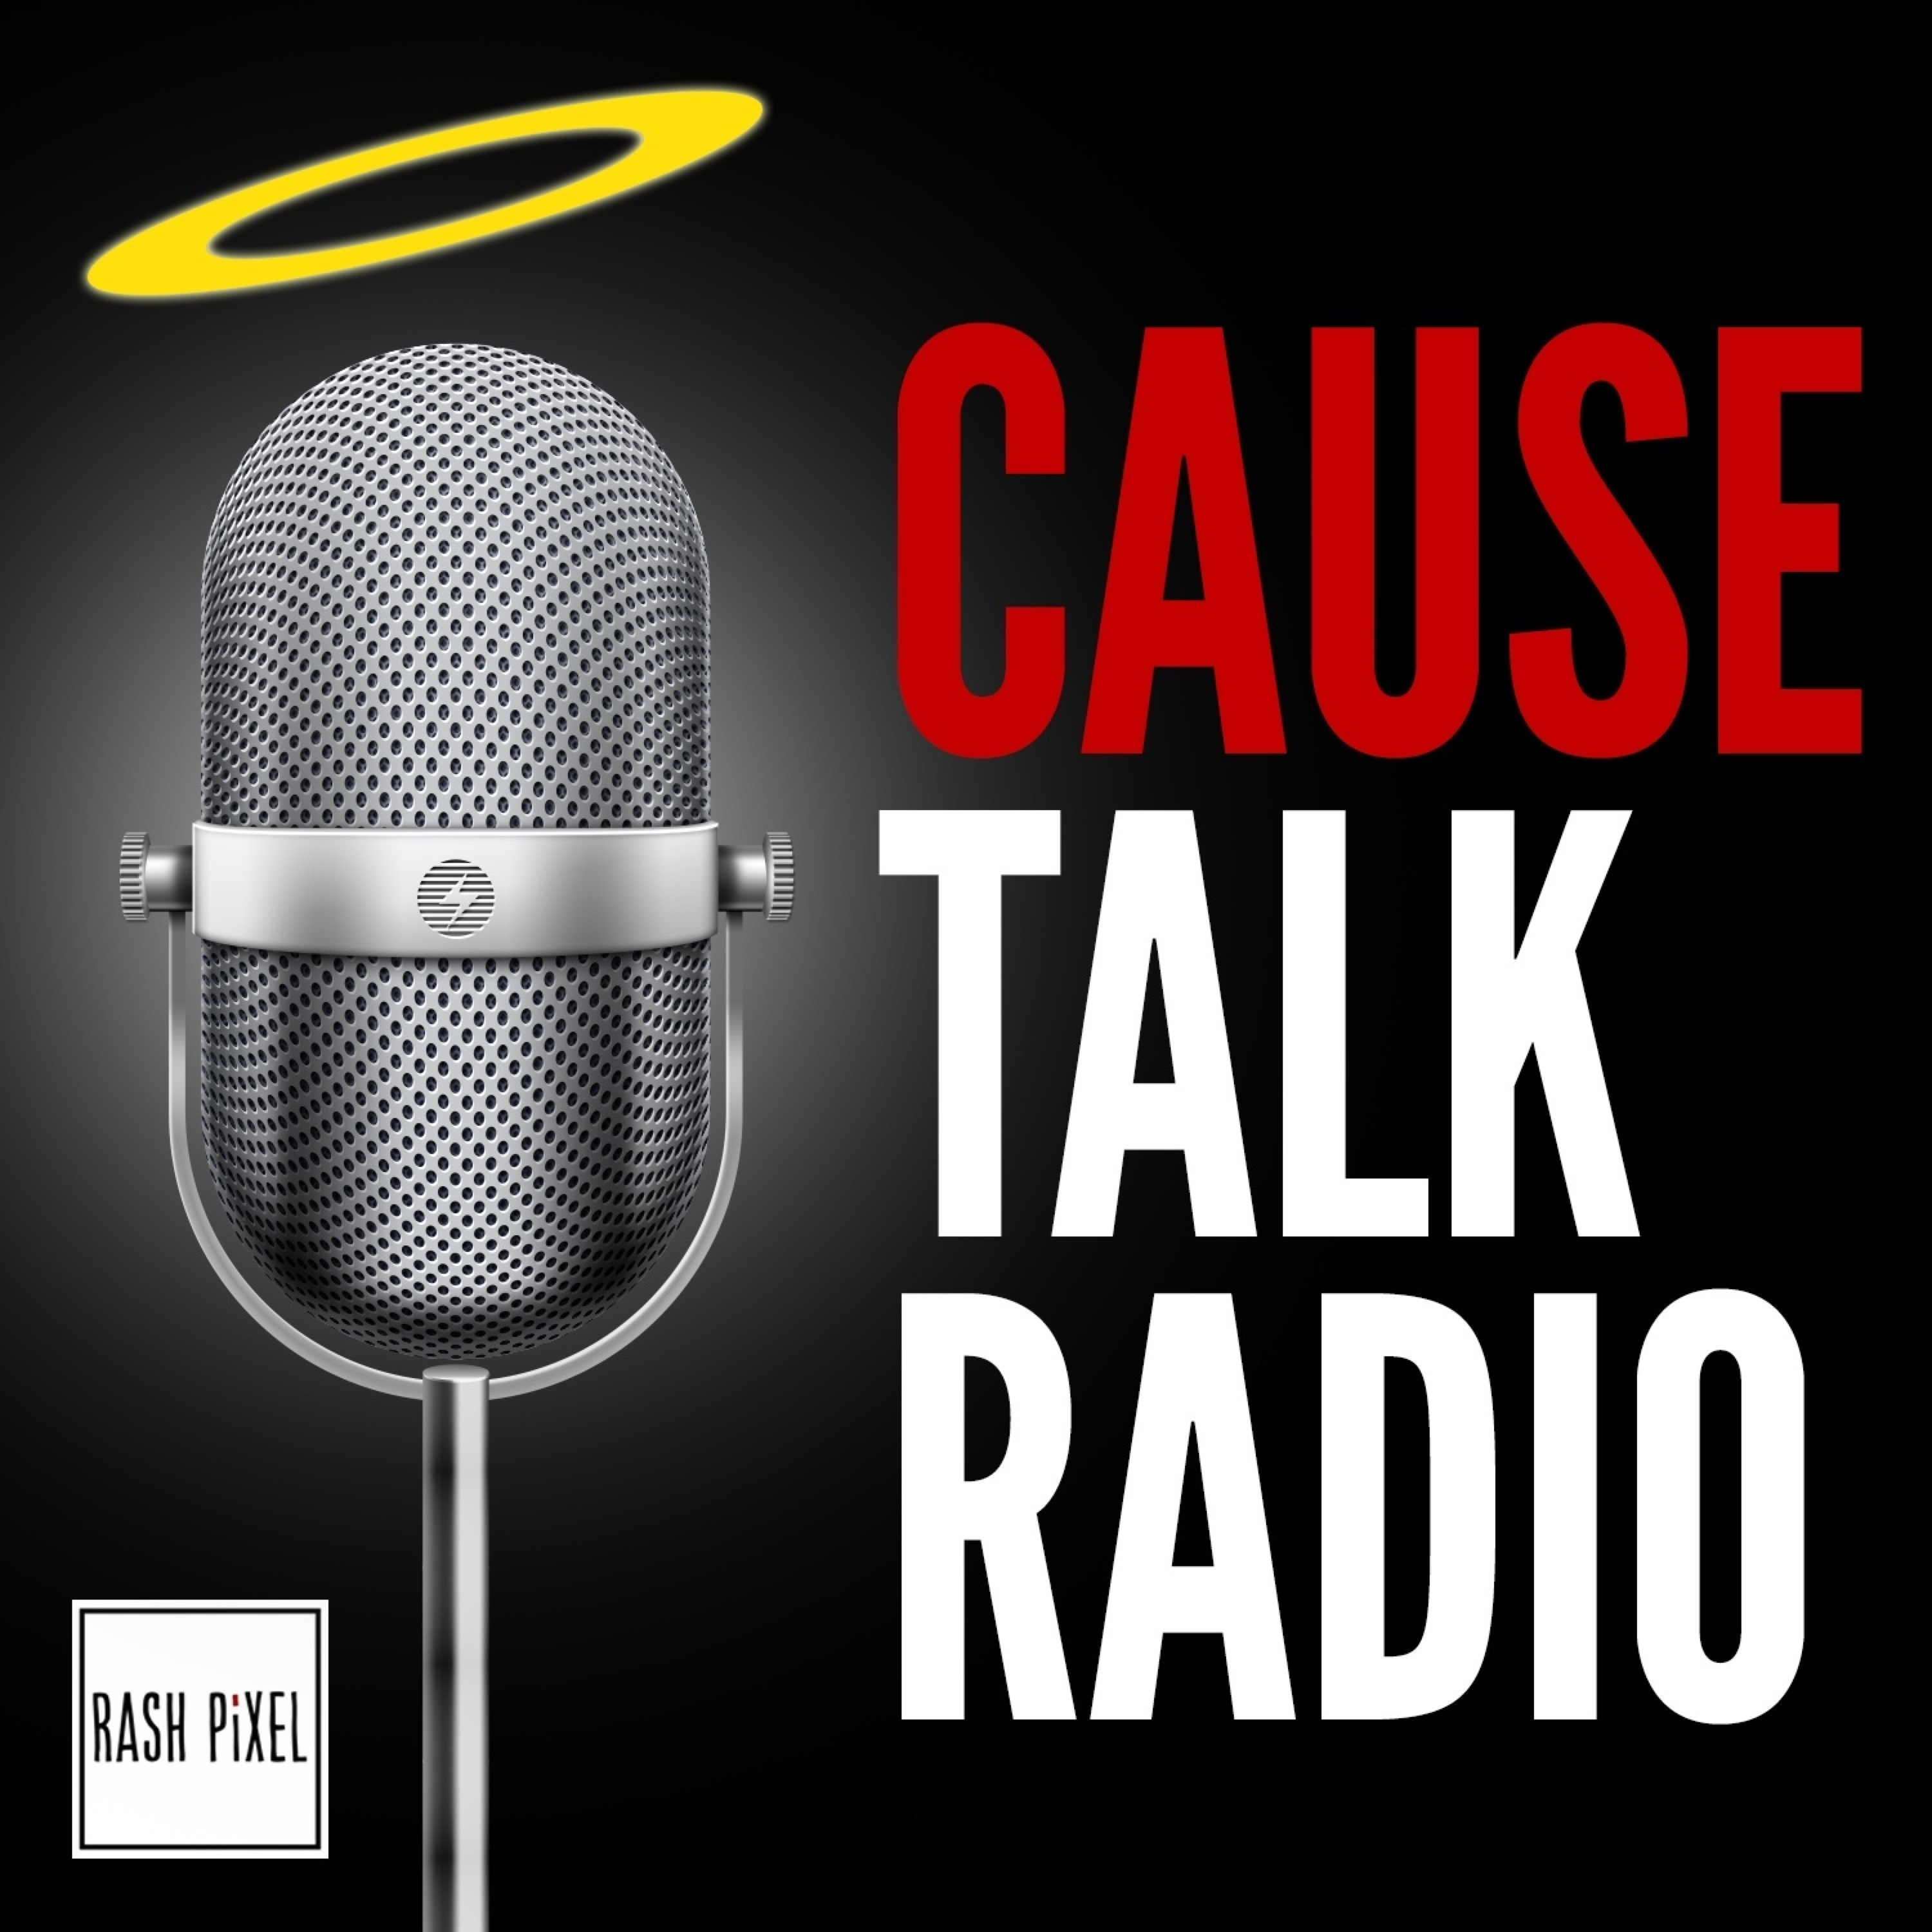 cd819f49b6d Cause Talk Radio: The Cause Marketing Podcast → Podbay